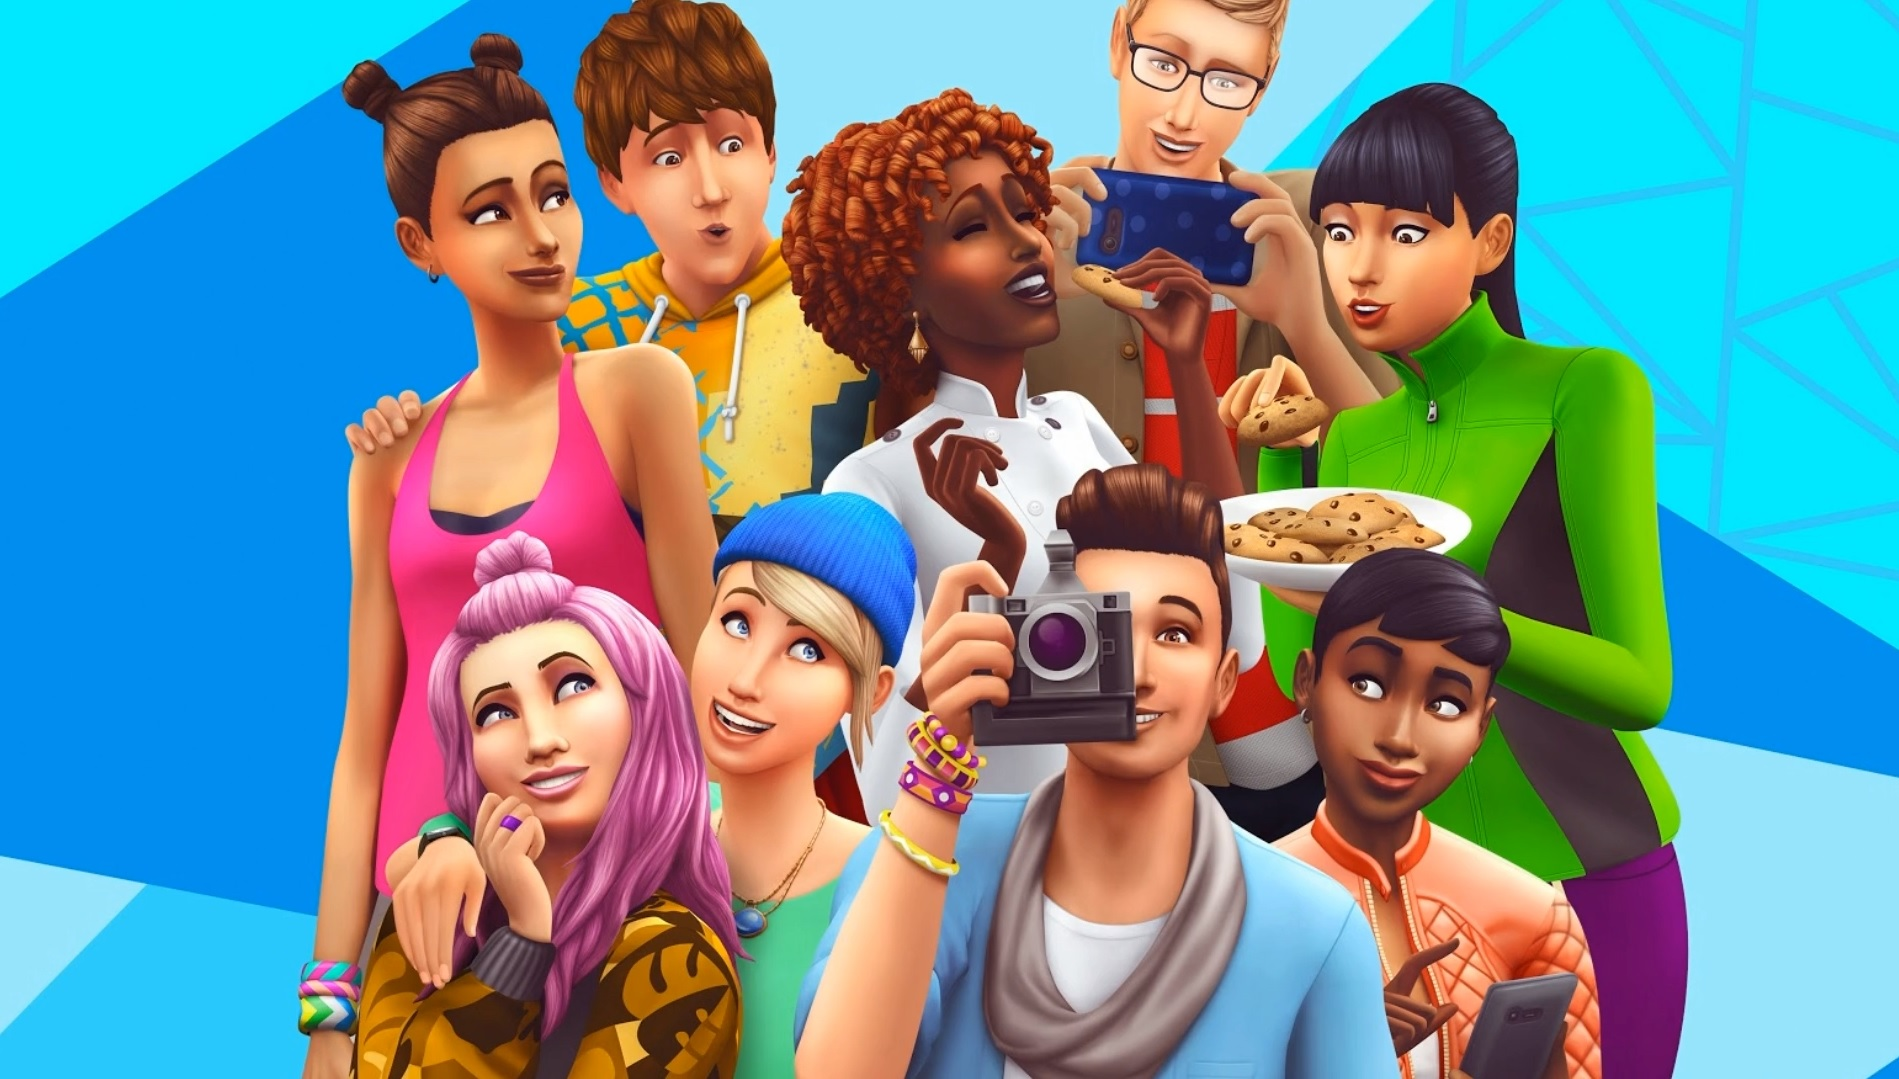 The Sims 4 will soon let you create a sim from a personality quiz | PC Gamer